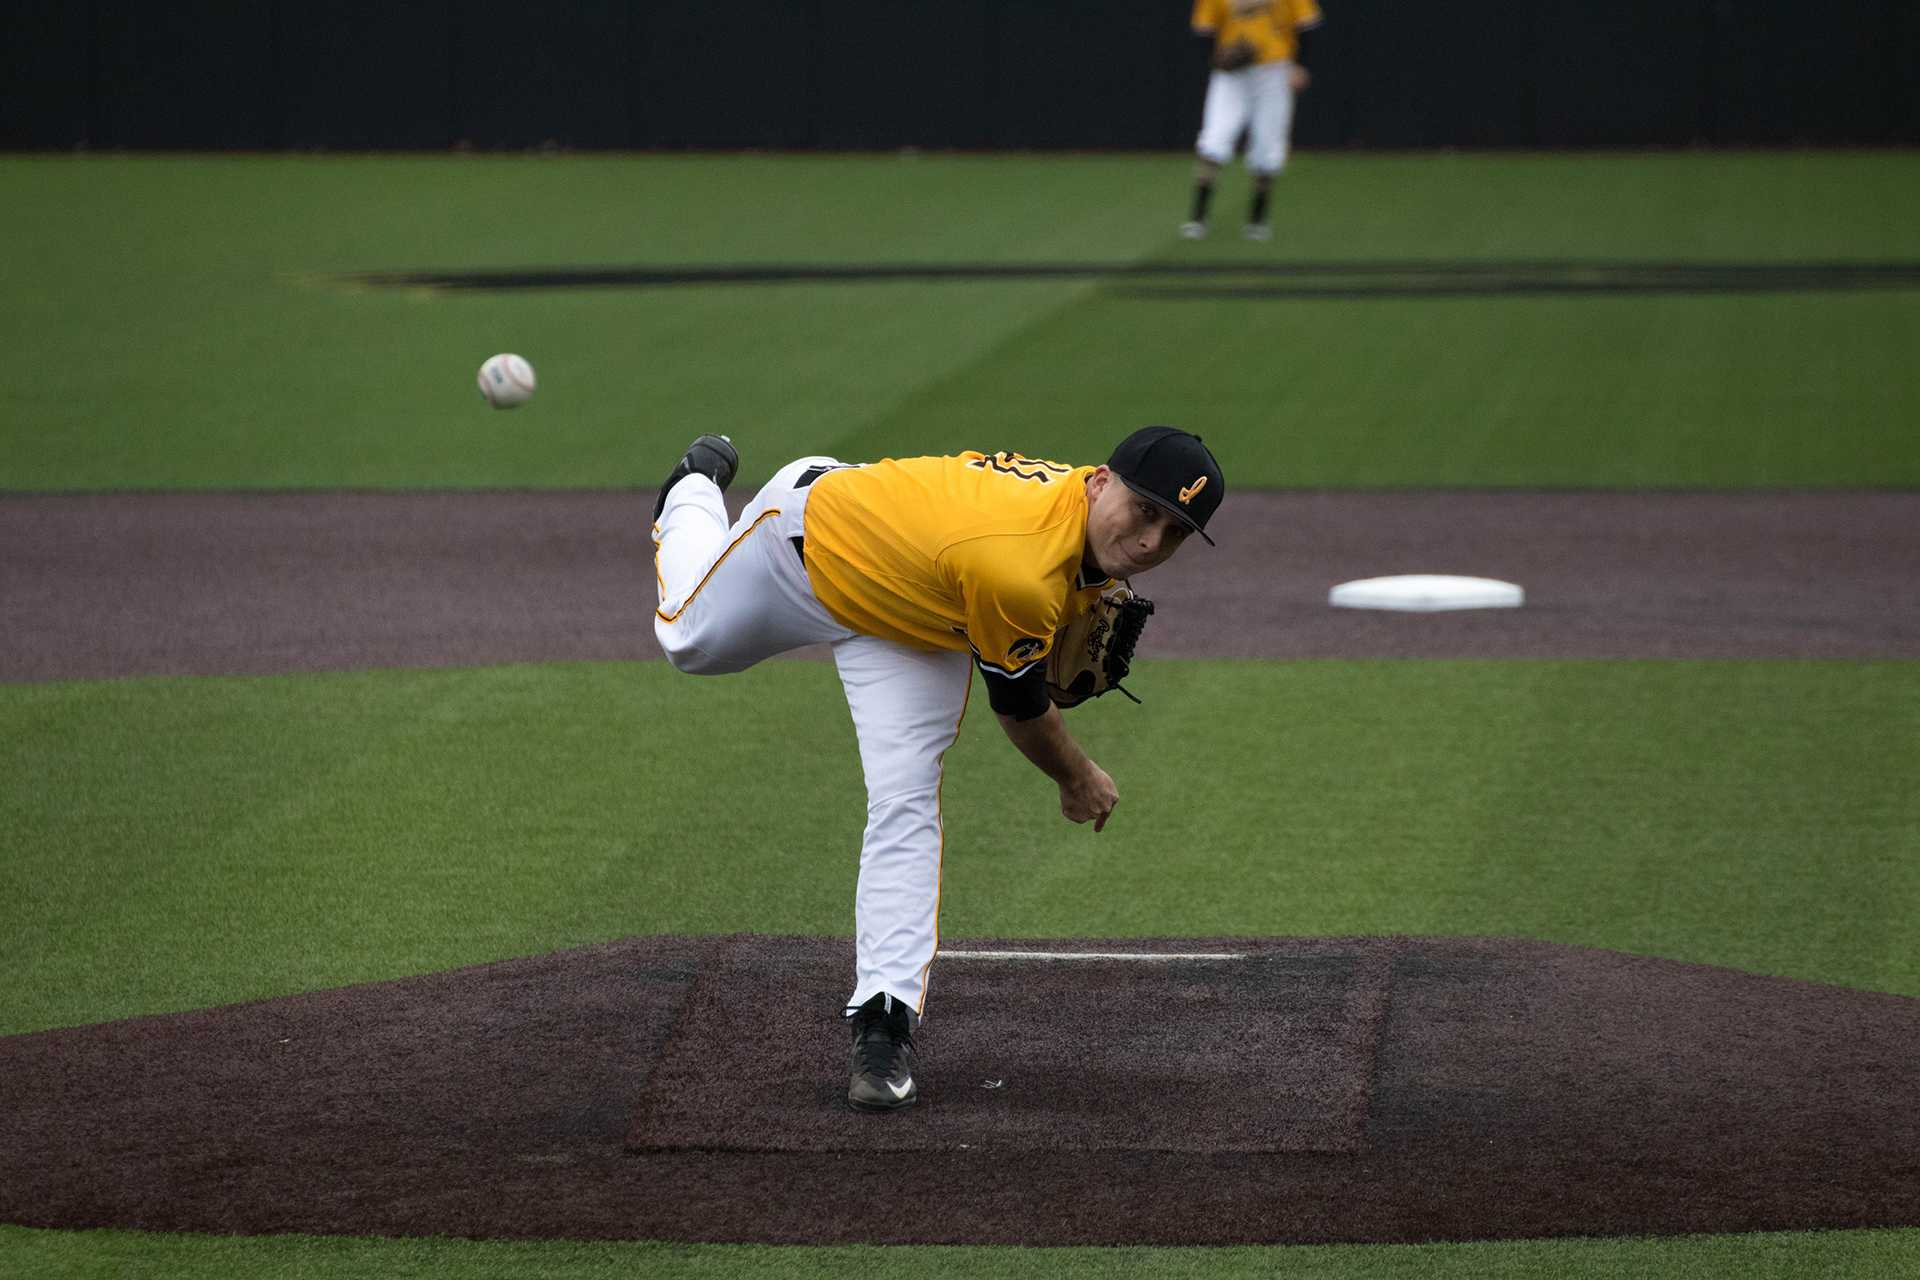 Cole McDonald pitches during Iowa men's baseball vs. Ohio State at Banks Field on April 8, 2018. The Hawkeyes won the game 2-1. (Megan Nagorzanski/The Daily Iowan)